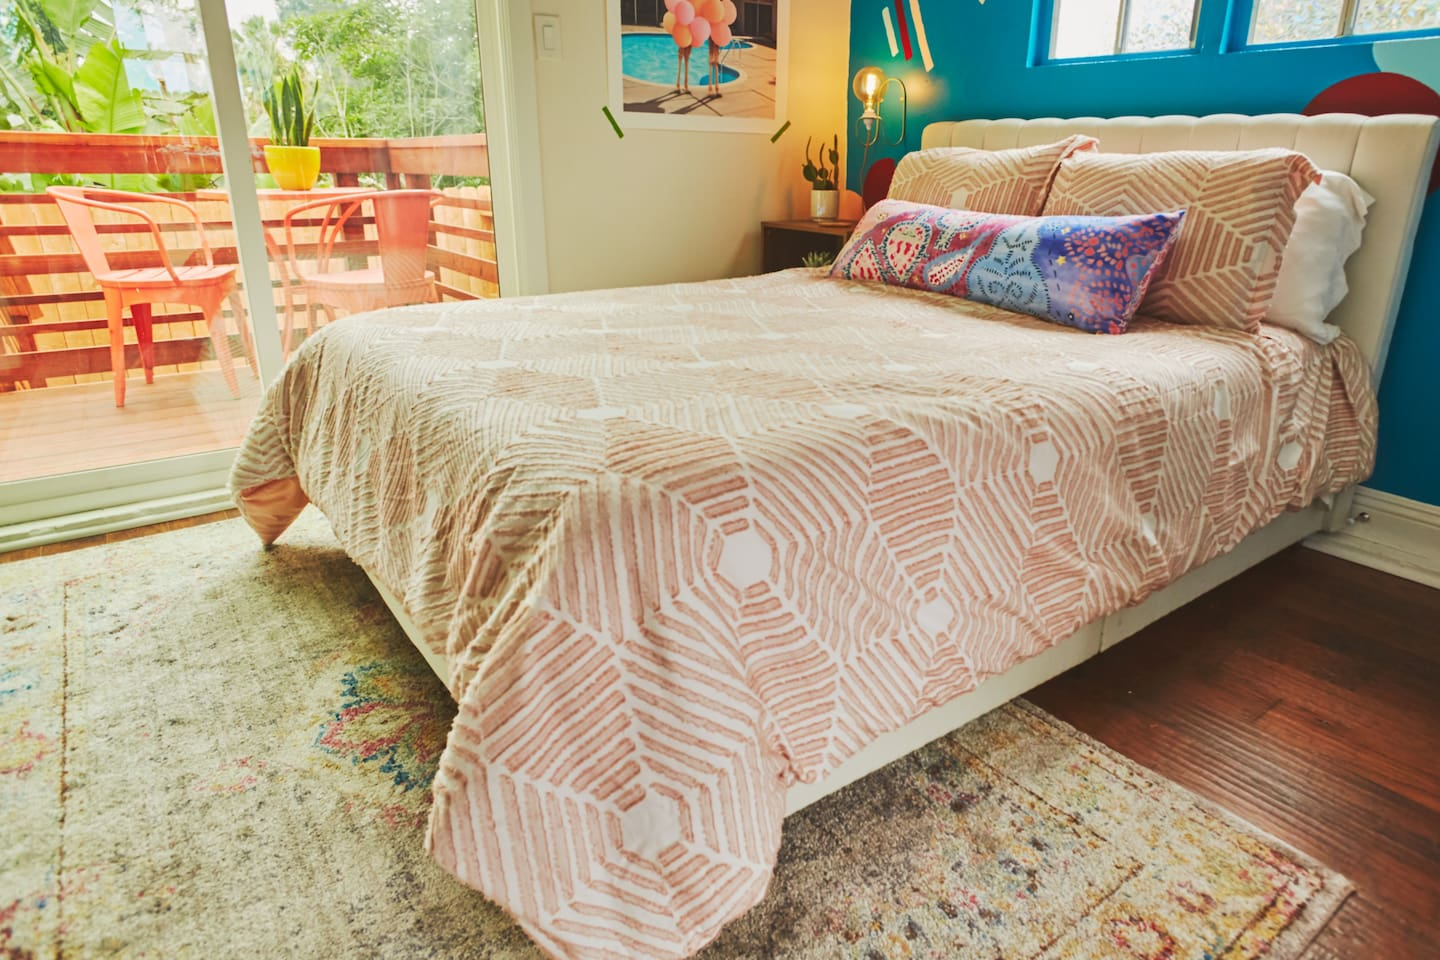 Cotton sheets on a memory foam mattress. Sliding glass door gives access to your own private deck.